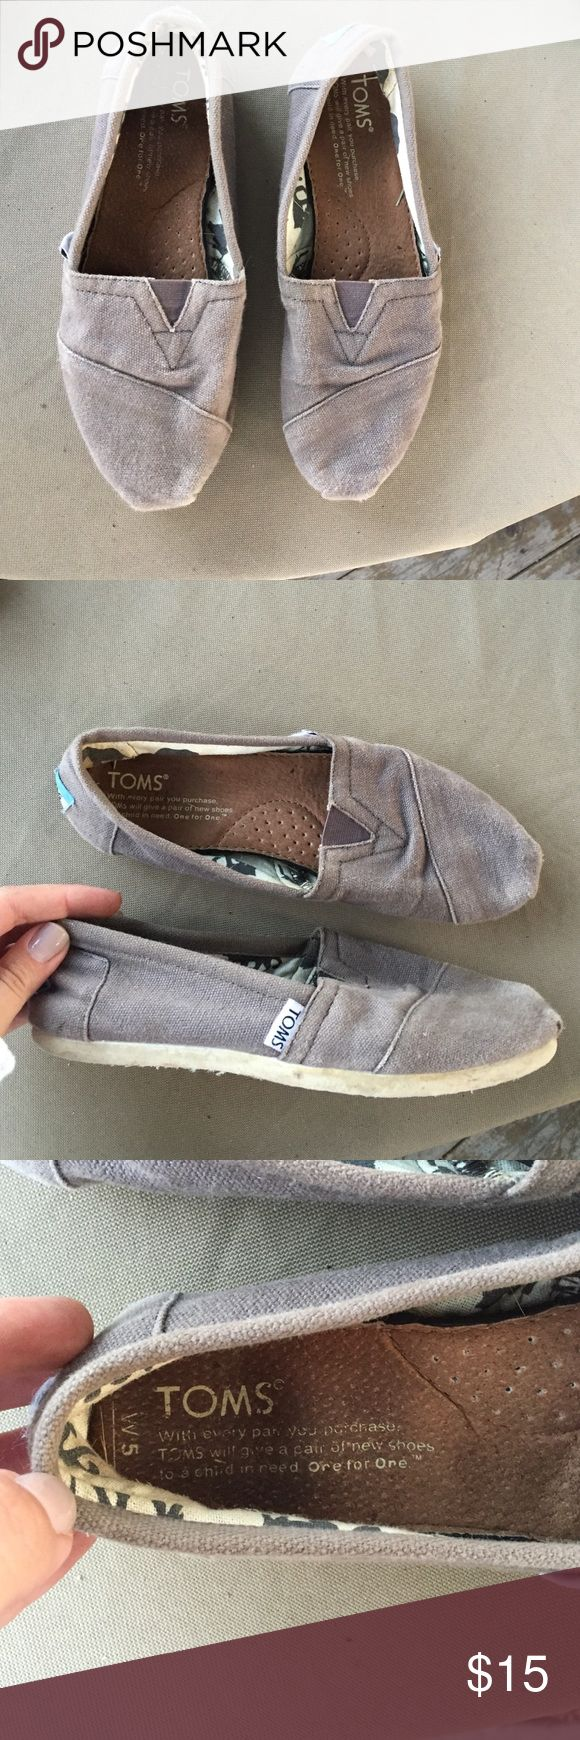 Gray Toms No rips or stains. Good condition. TOMS Shoes Flats & Loafers